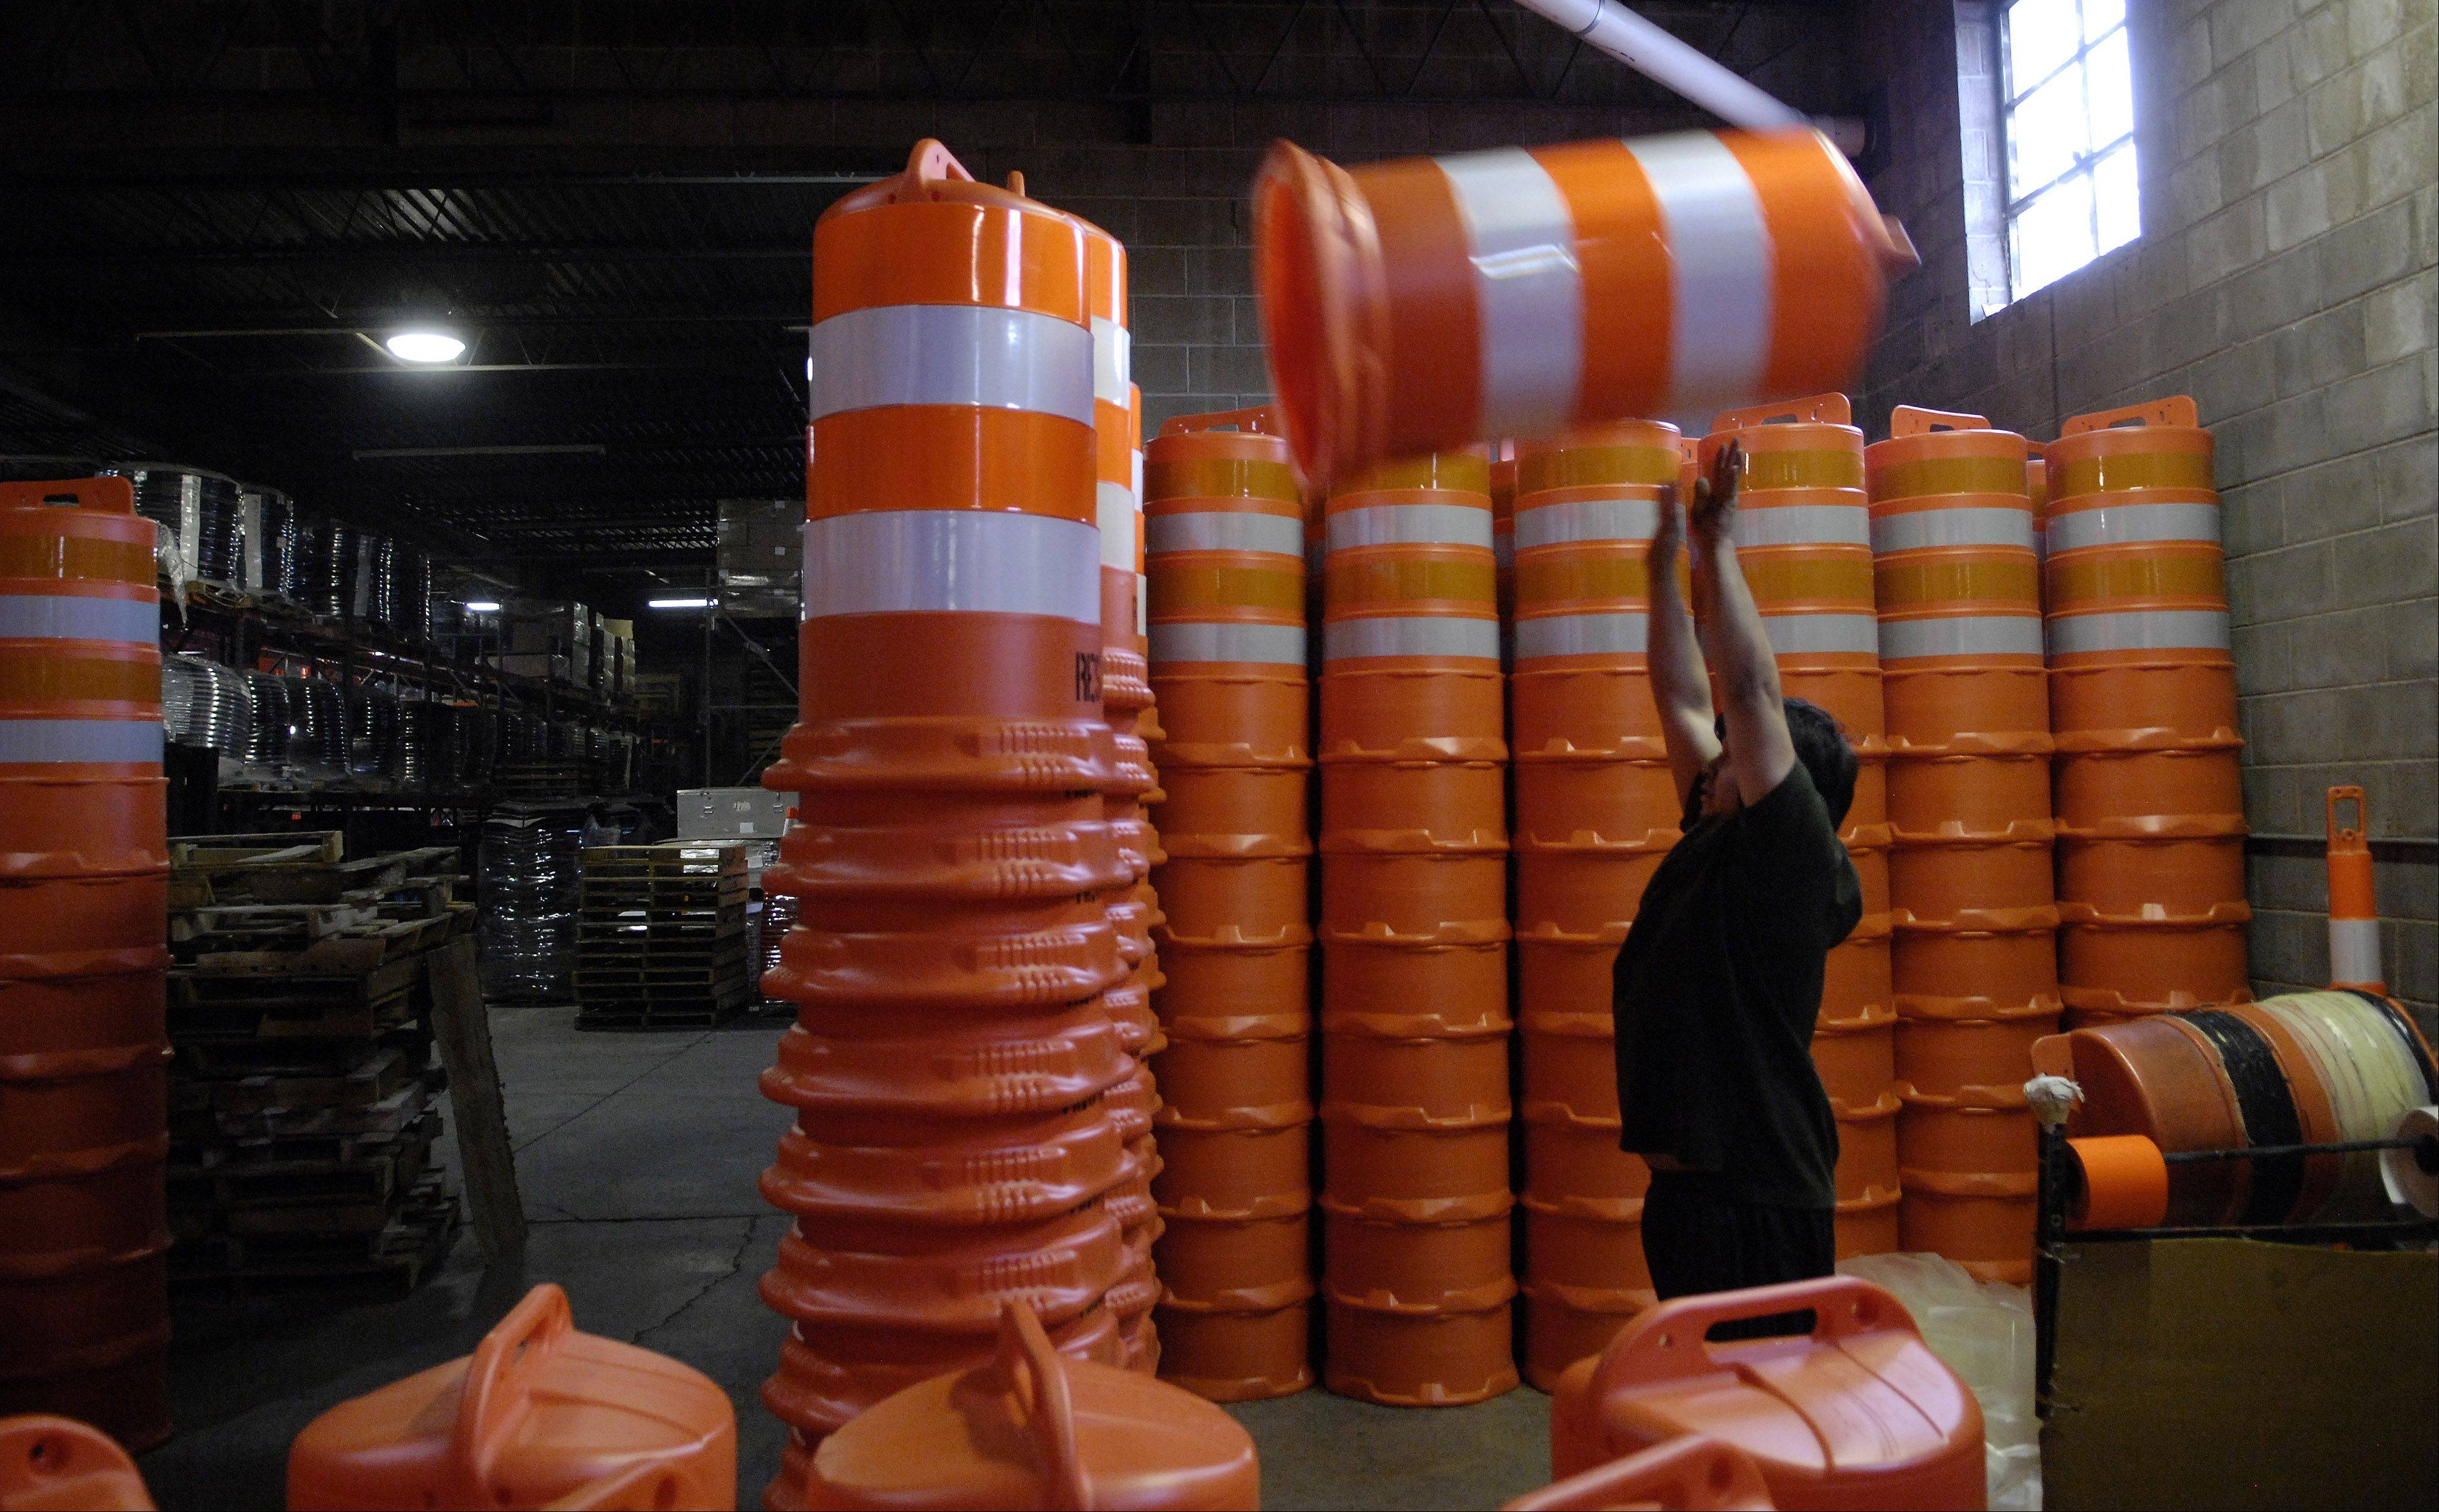 Victor Mendoza tosses a barrel onto a stack after wrapping it in reflective tape.